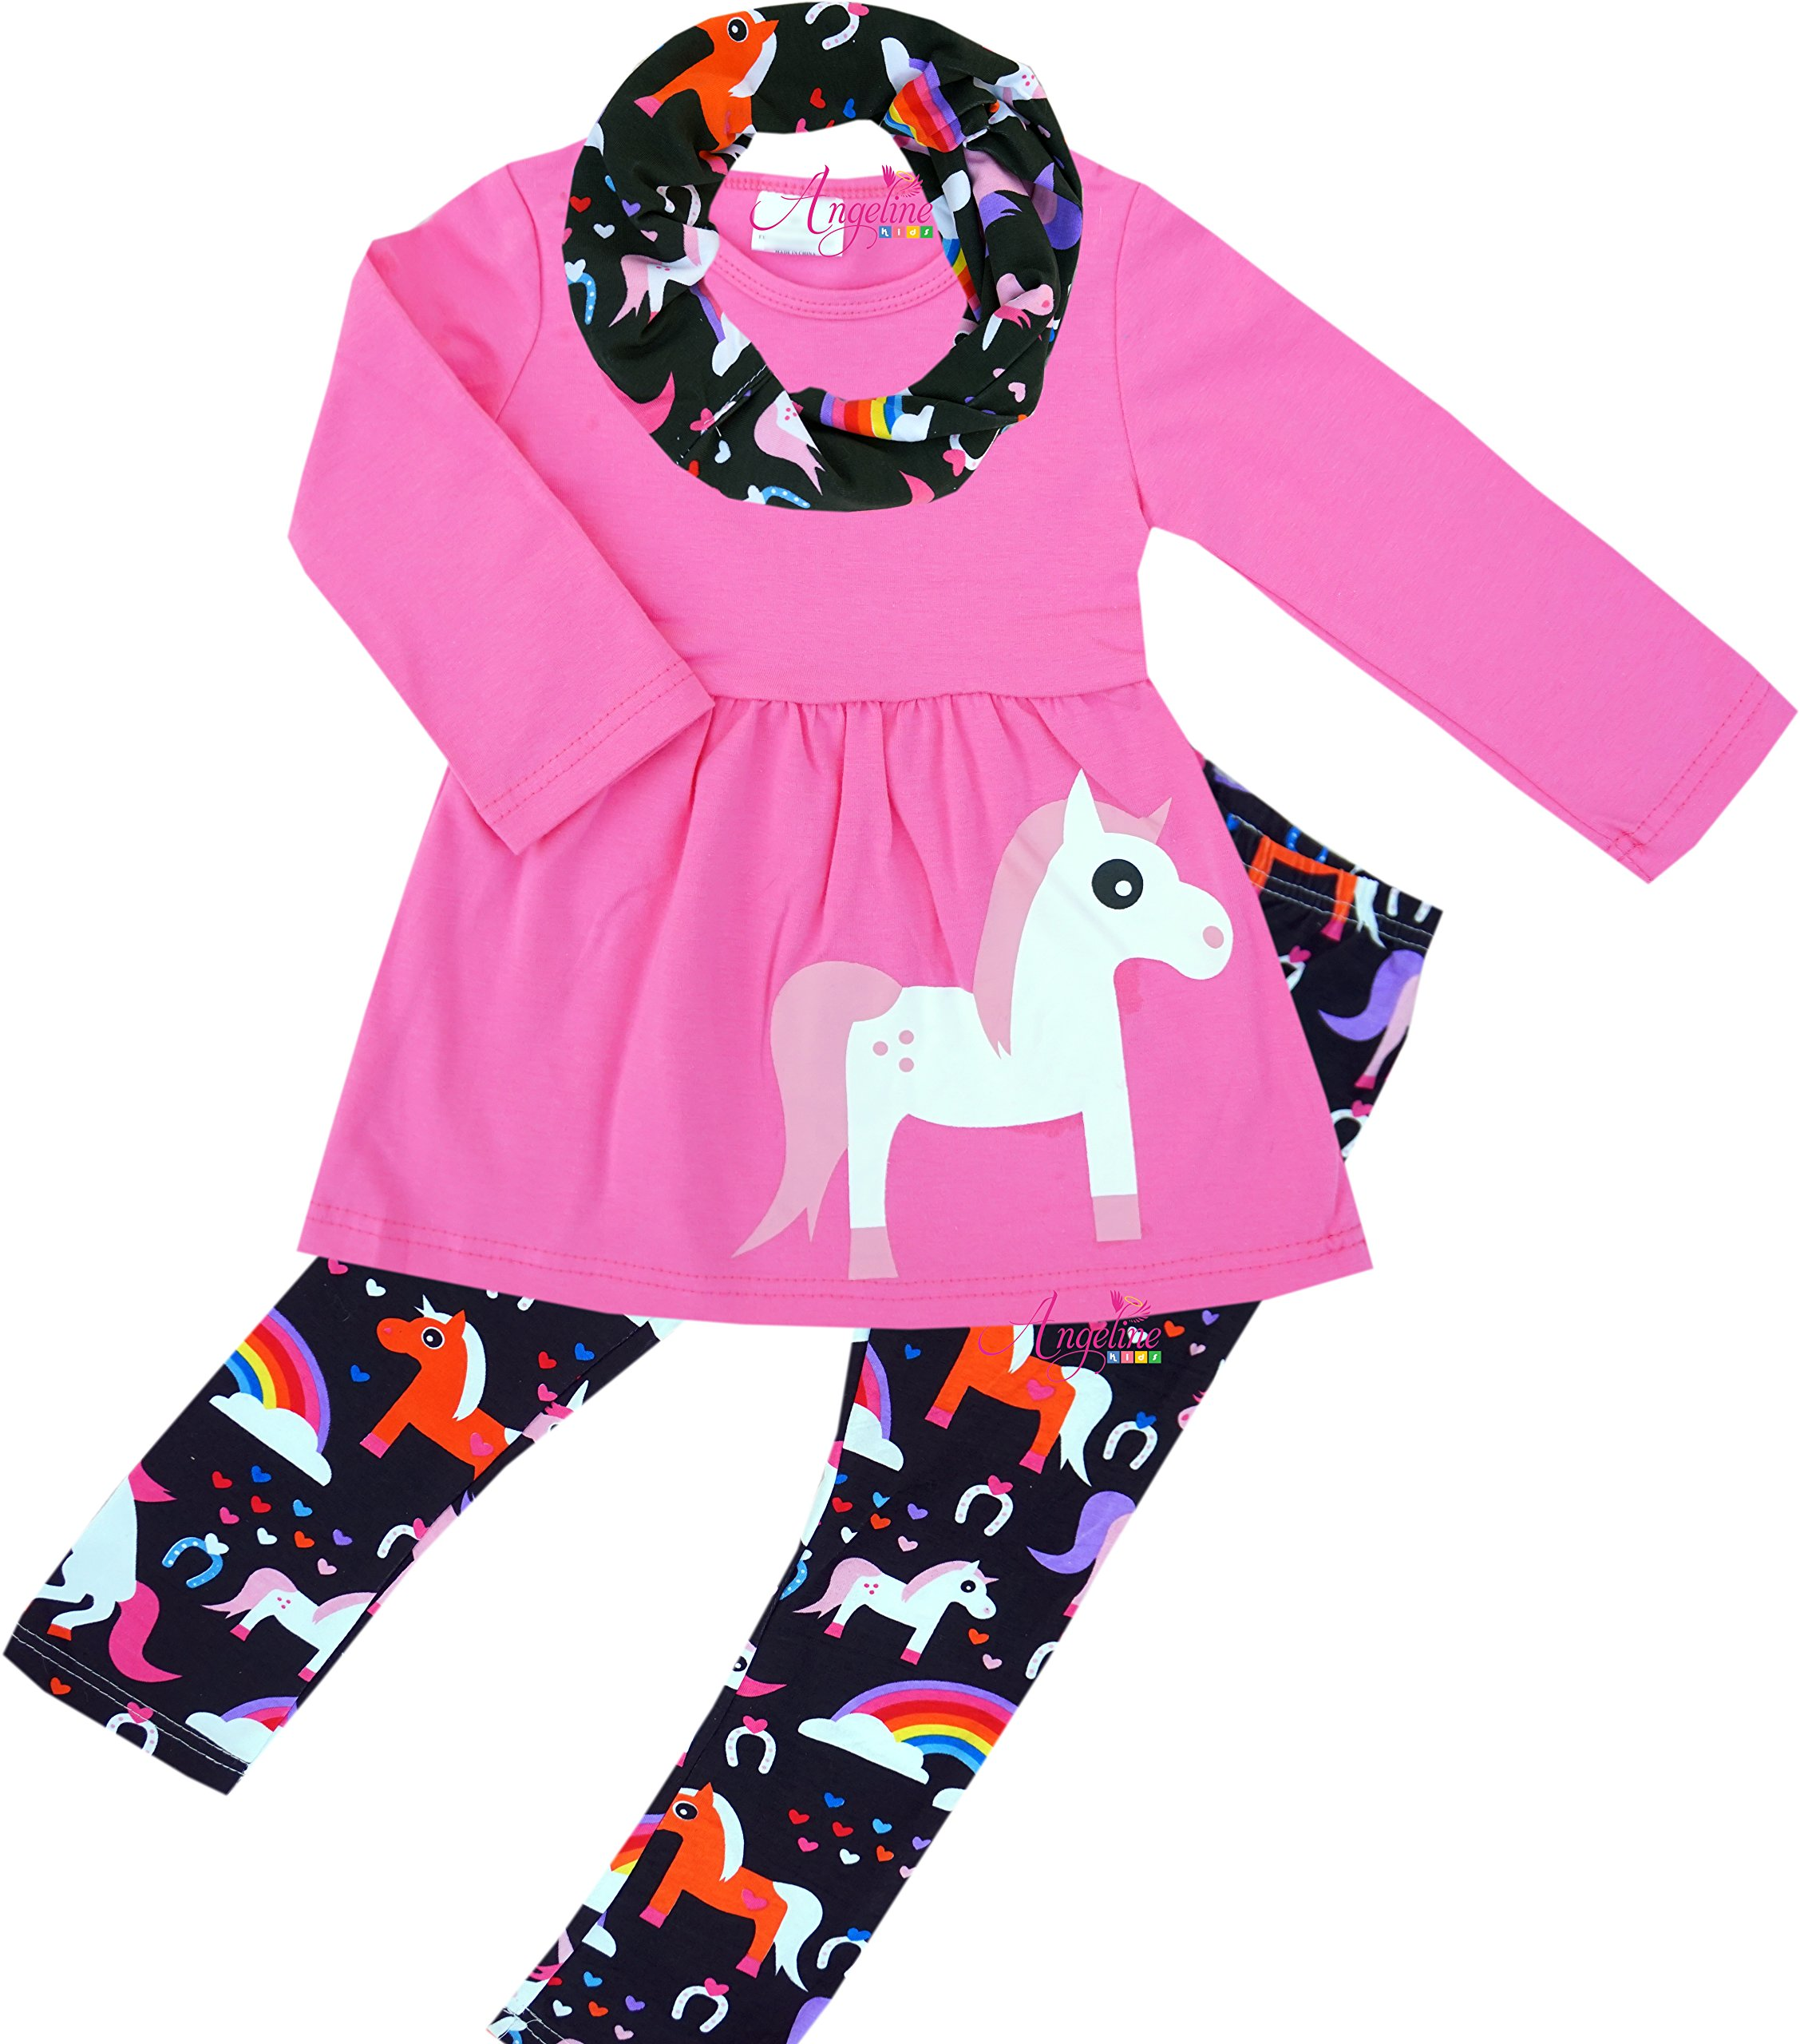 Boutique Clothing Girls Winter Fall Spring Cowgirls Unicorn Scart Set Pink 8T/3XL by Angeline (Image #1)